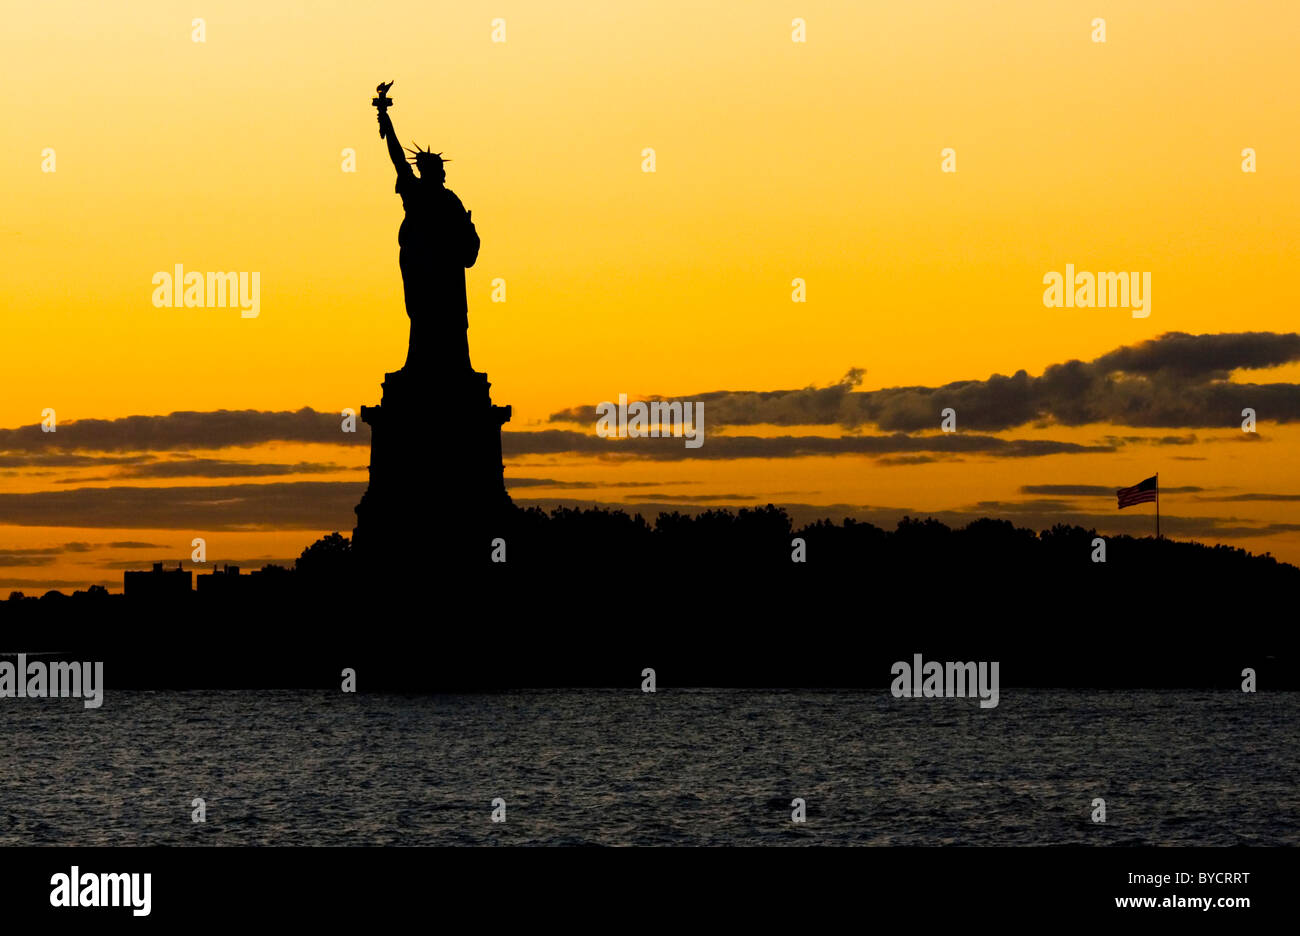 The Statue of Liberty at Sunset - Stock Image